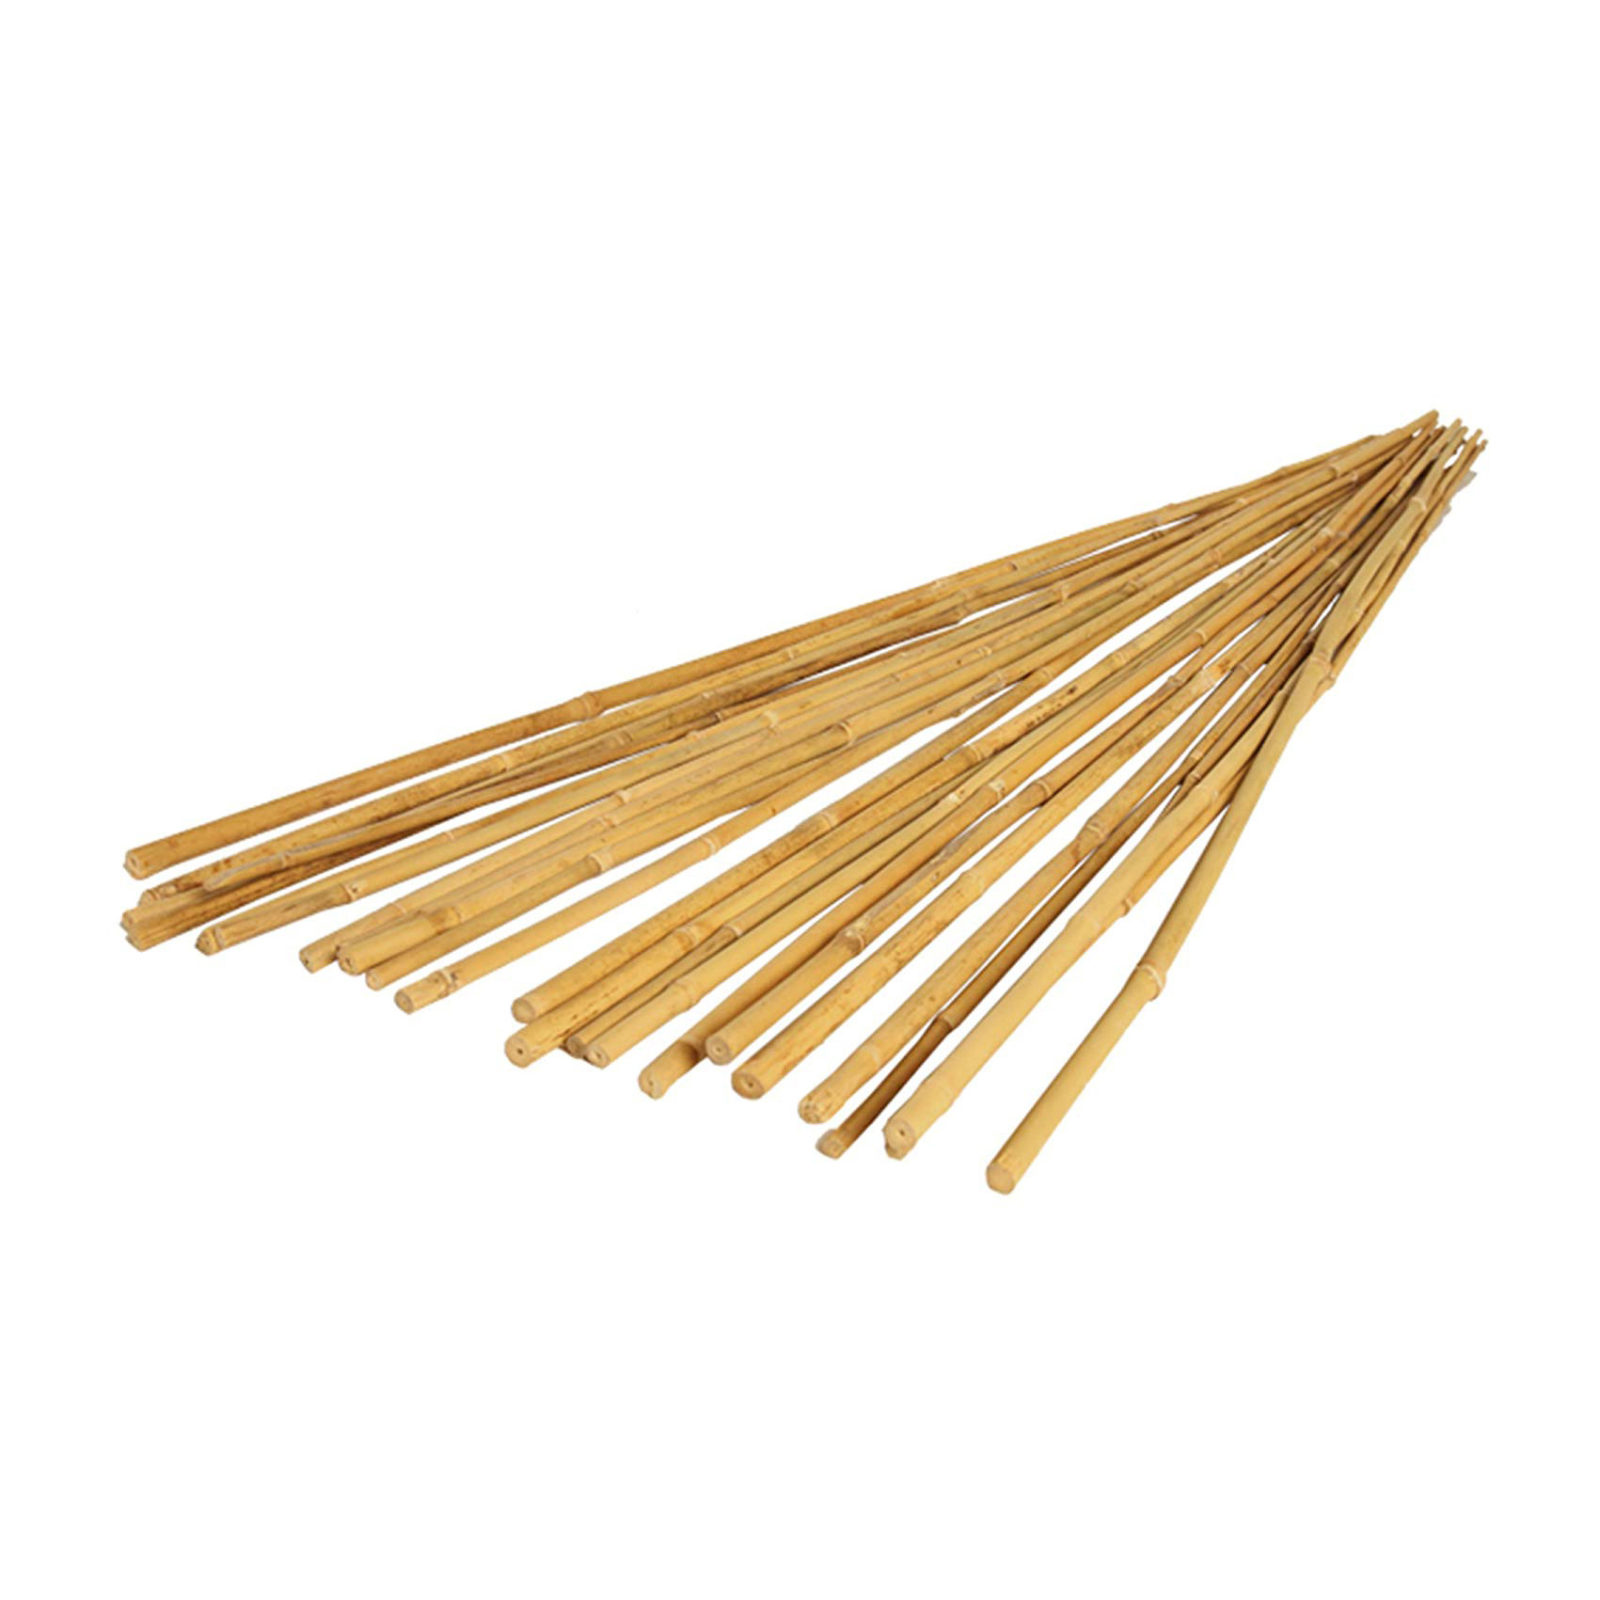 bamboo stakes resized 1